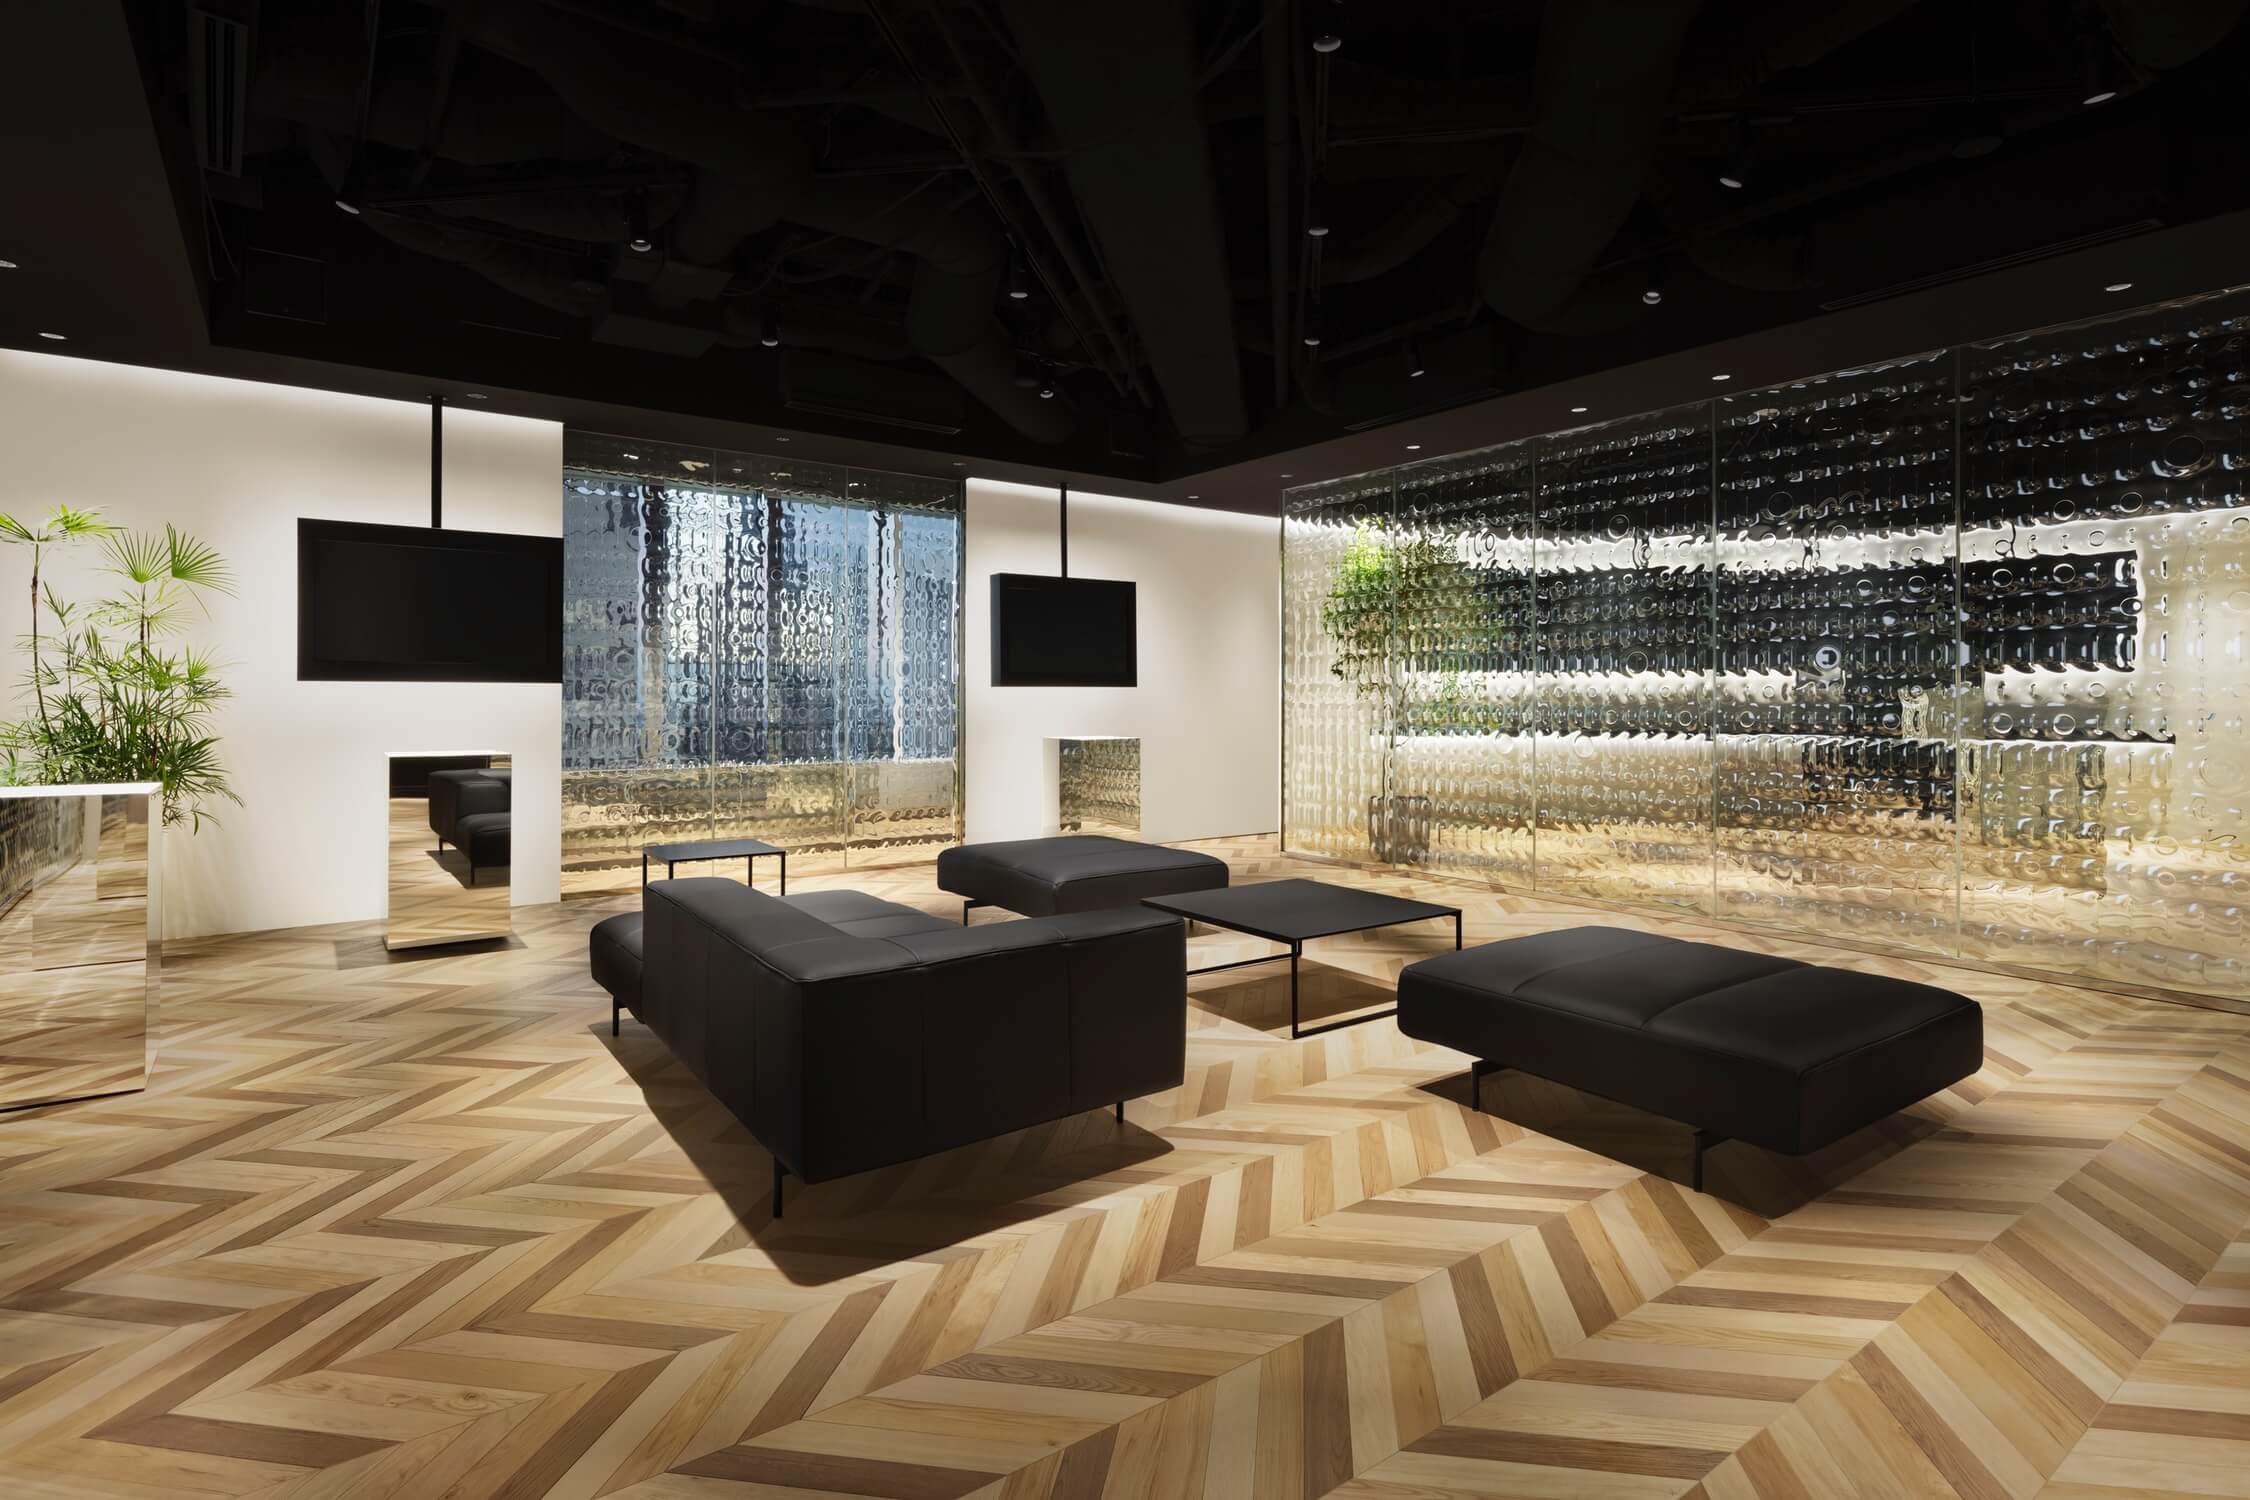 A view of the sitting area at Nendo McKinsey Tokyo